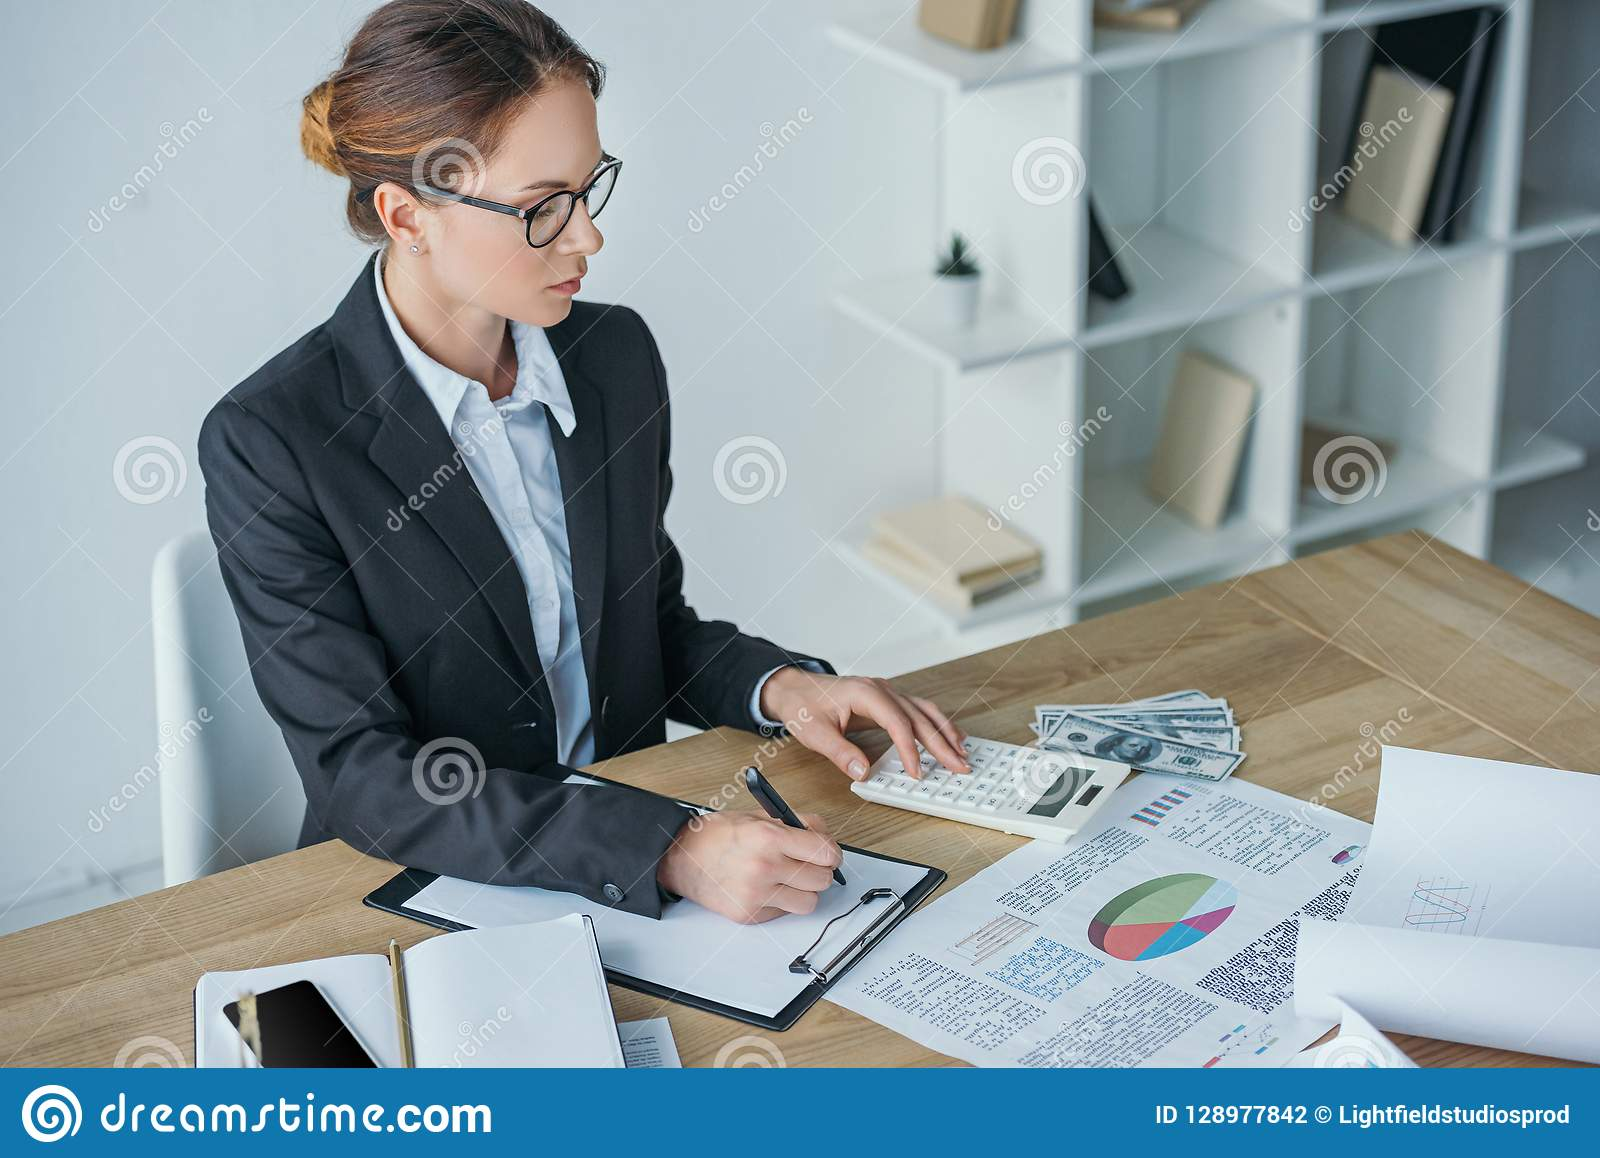 high angle view of financier working at table in office with calculator